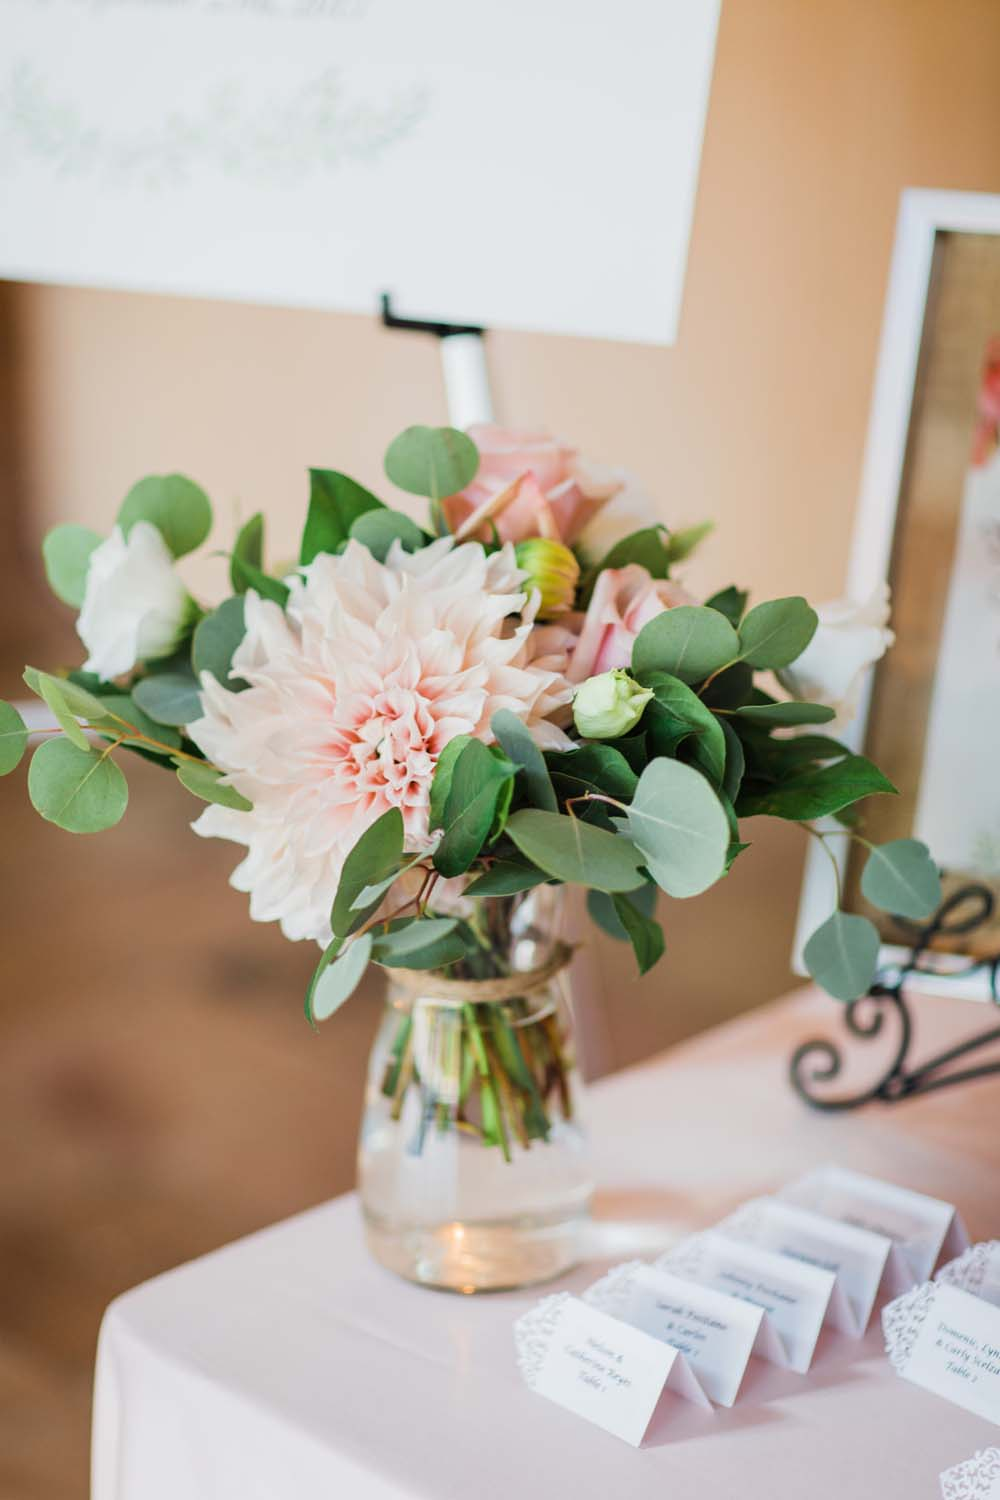 A Rustic, Whimsical Wedding in Tottenham - Floral decor